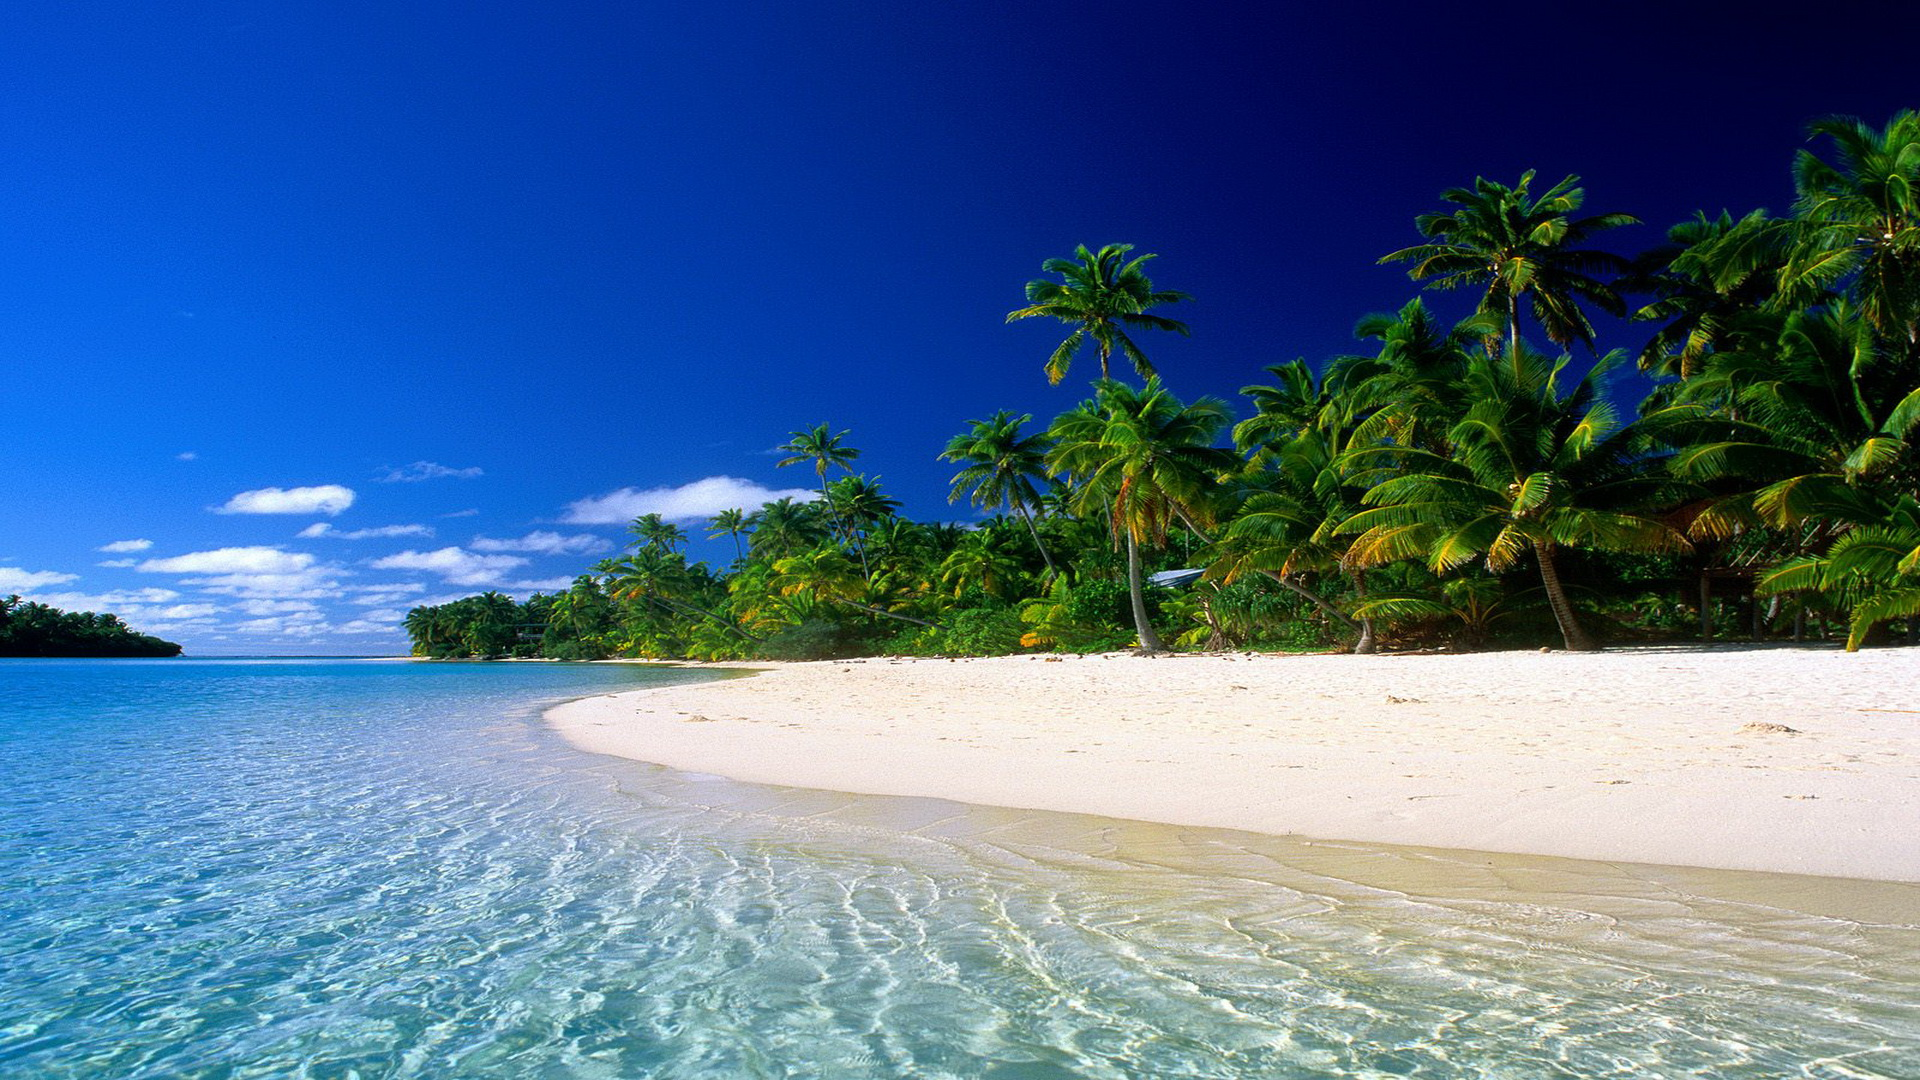 cook islands HD Wallpapers Wallpaper HD Desktop Wallpapers 1920 x 1920x1080